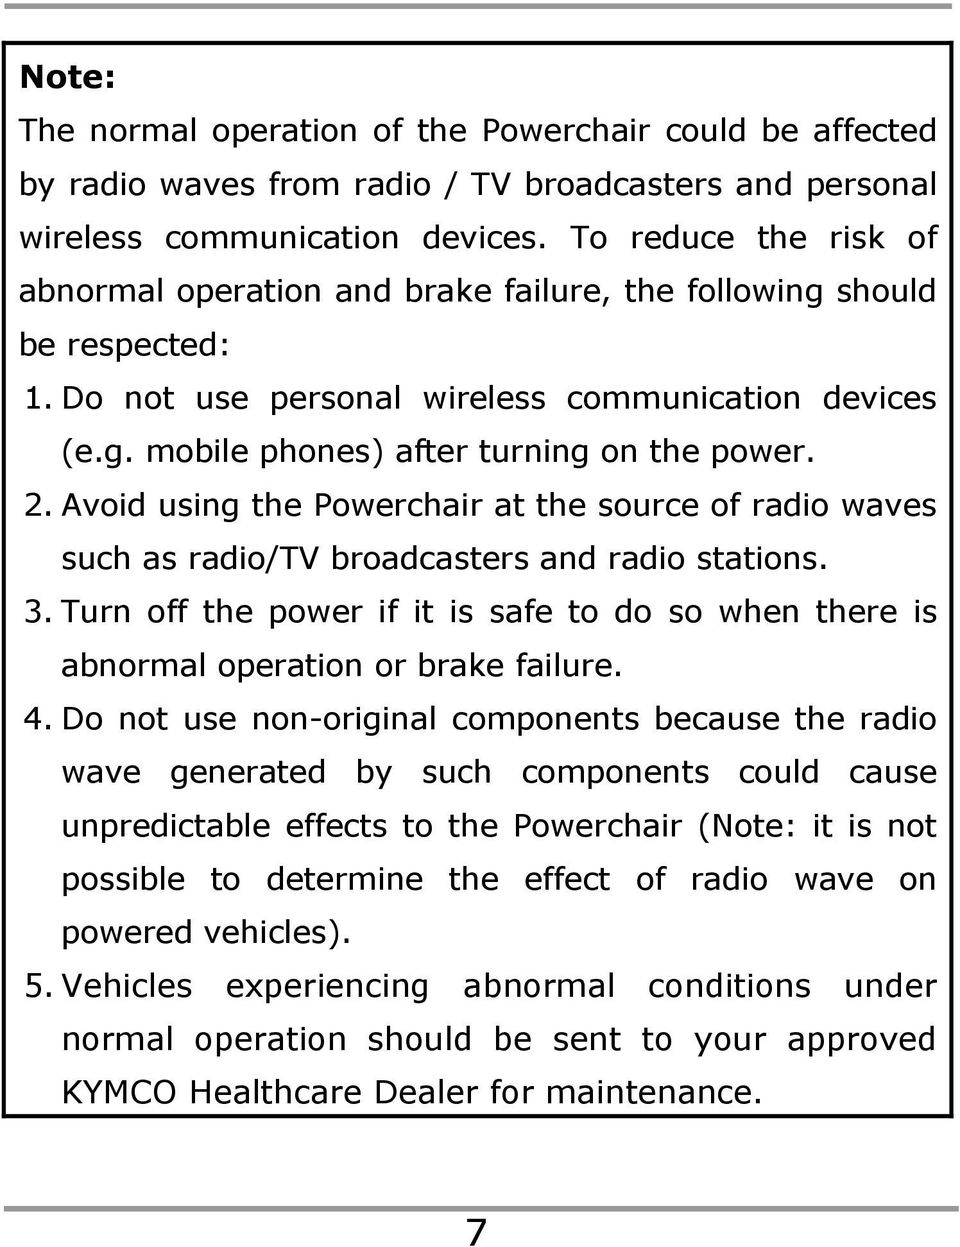 Avoid using the Powerchair at the source of radio waves such as radio/tv broadcasters and radio stations. 3.